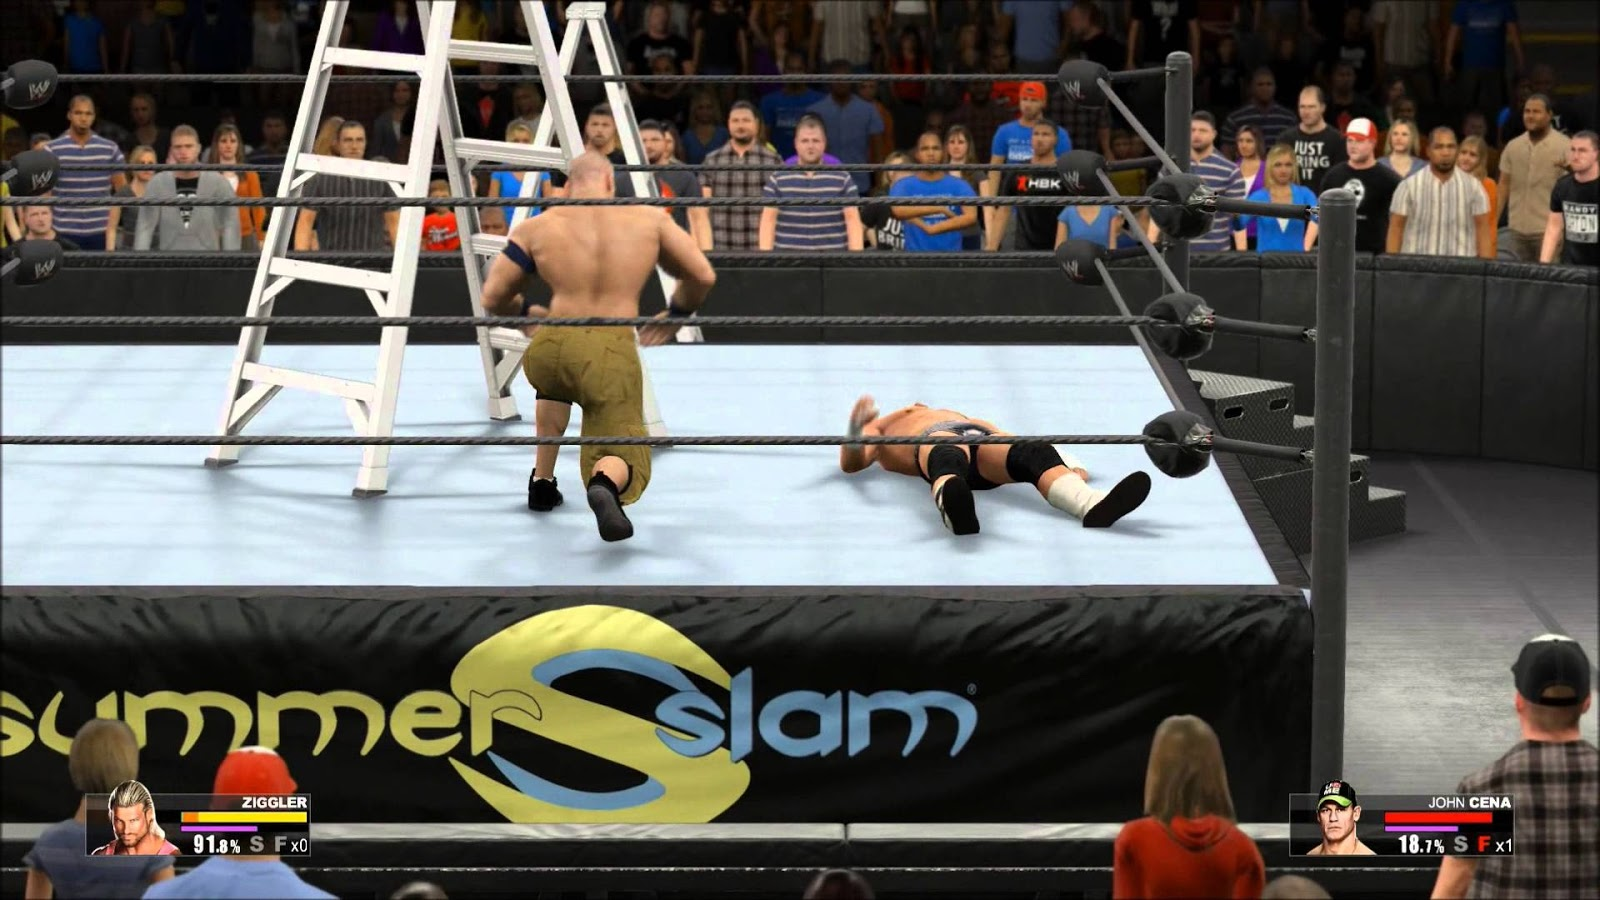 Wwe 2k16 free download pc game gsekai.